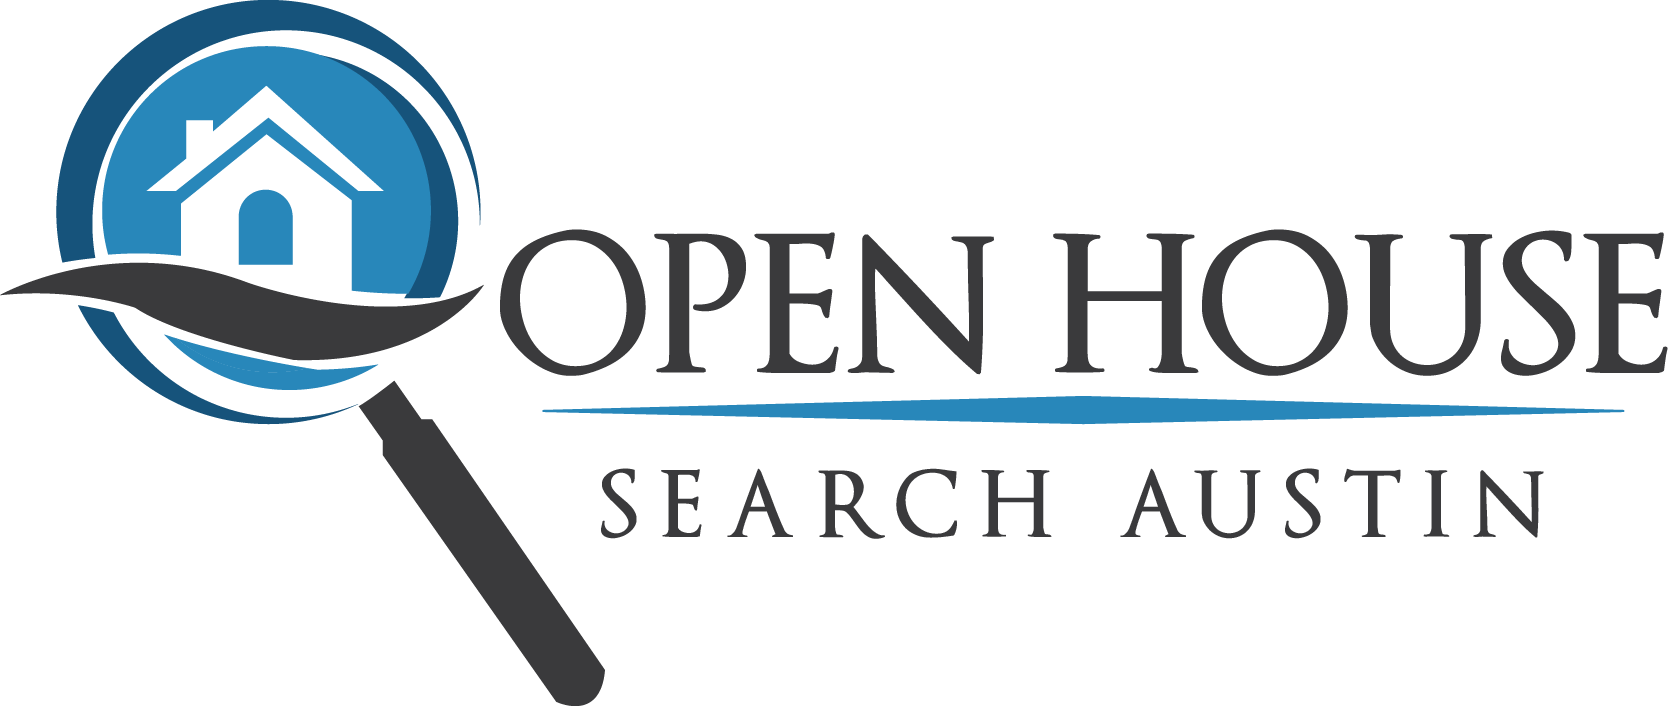 Open House Search Austin